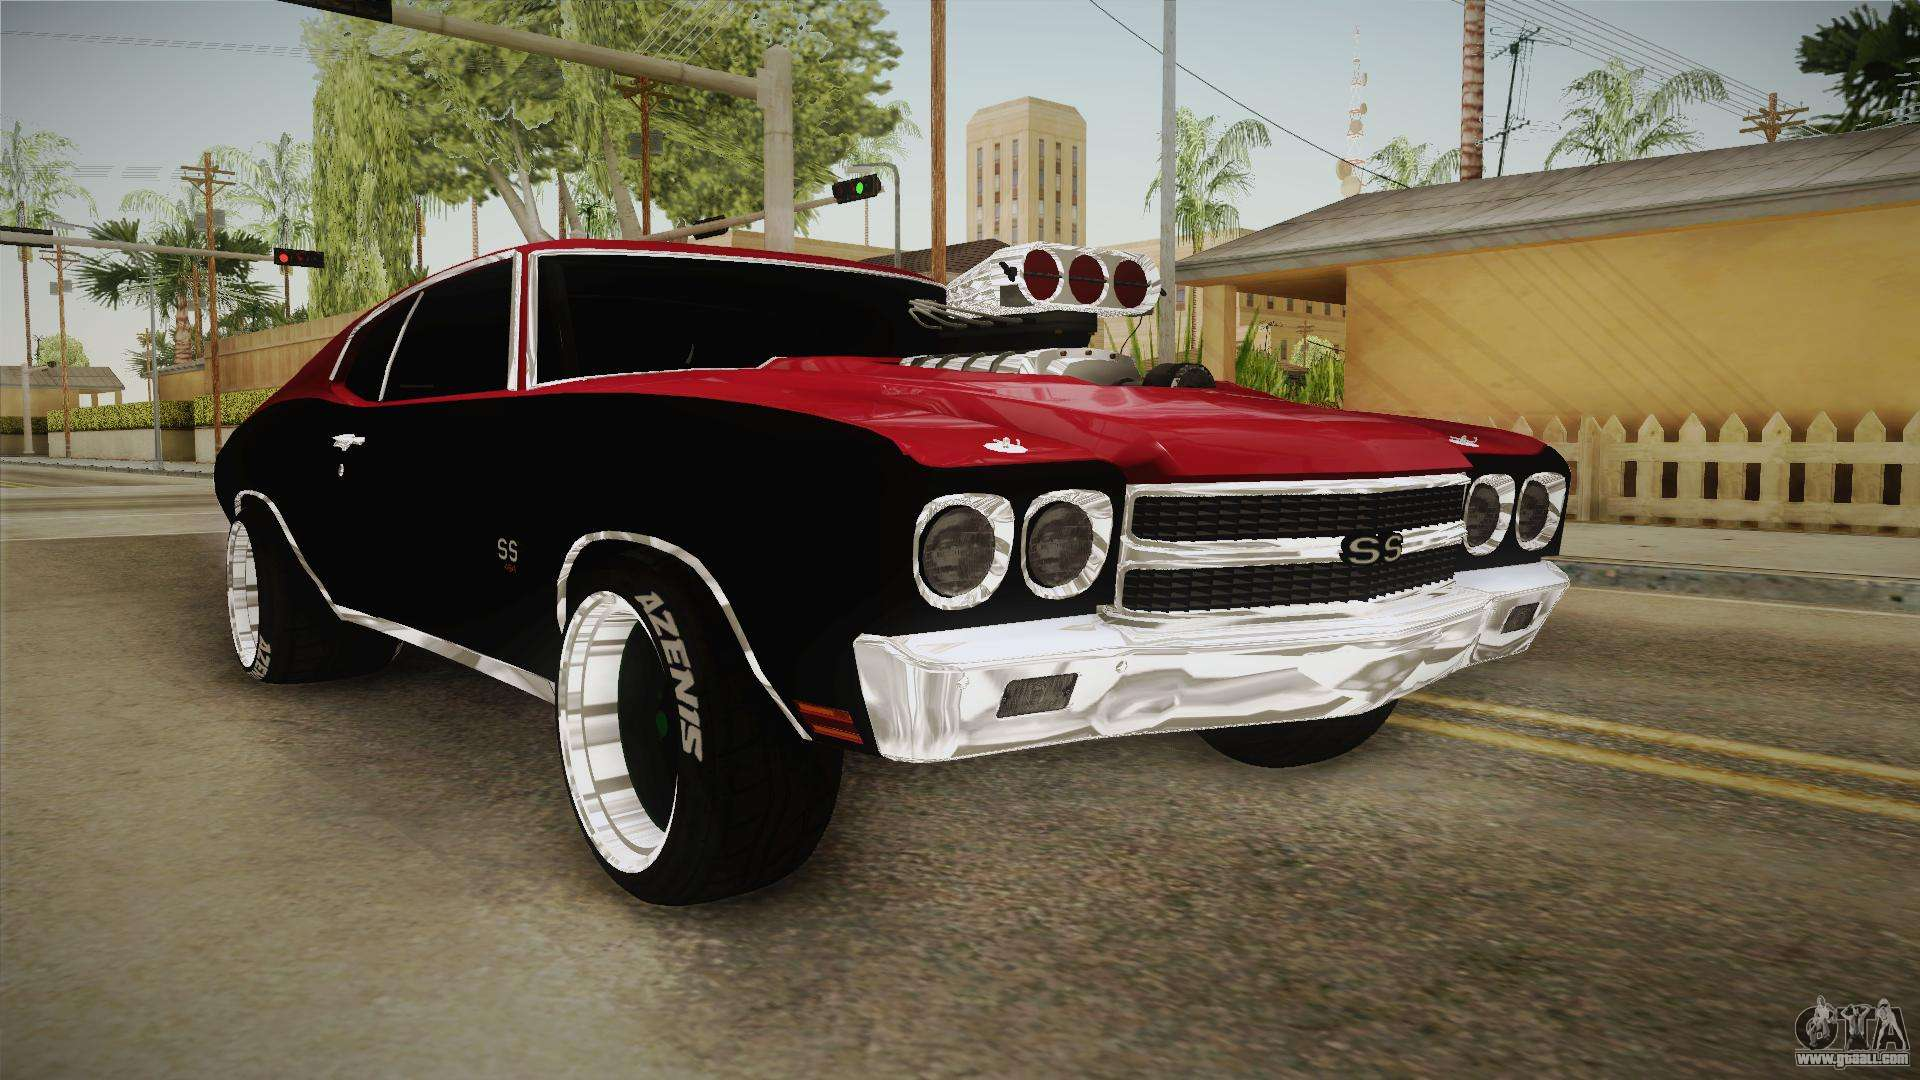 Chevrolet Chevelle Ss 1970 Drag Racing Tuned For Gta San